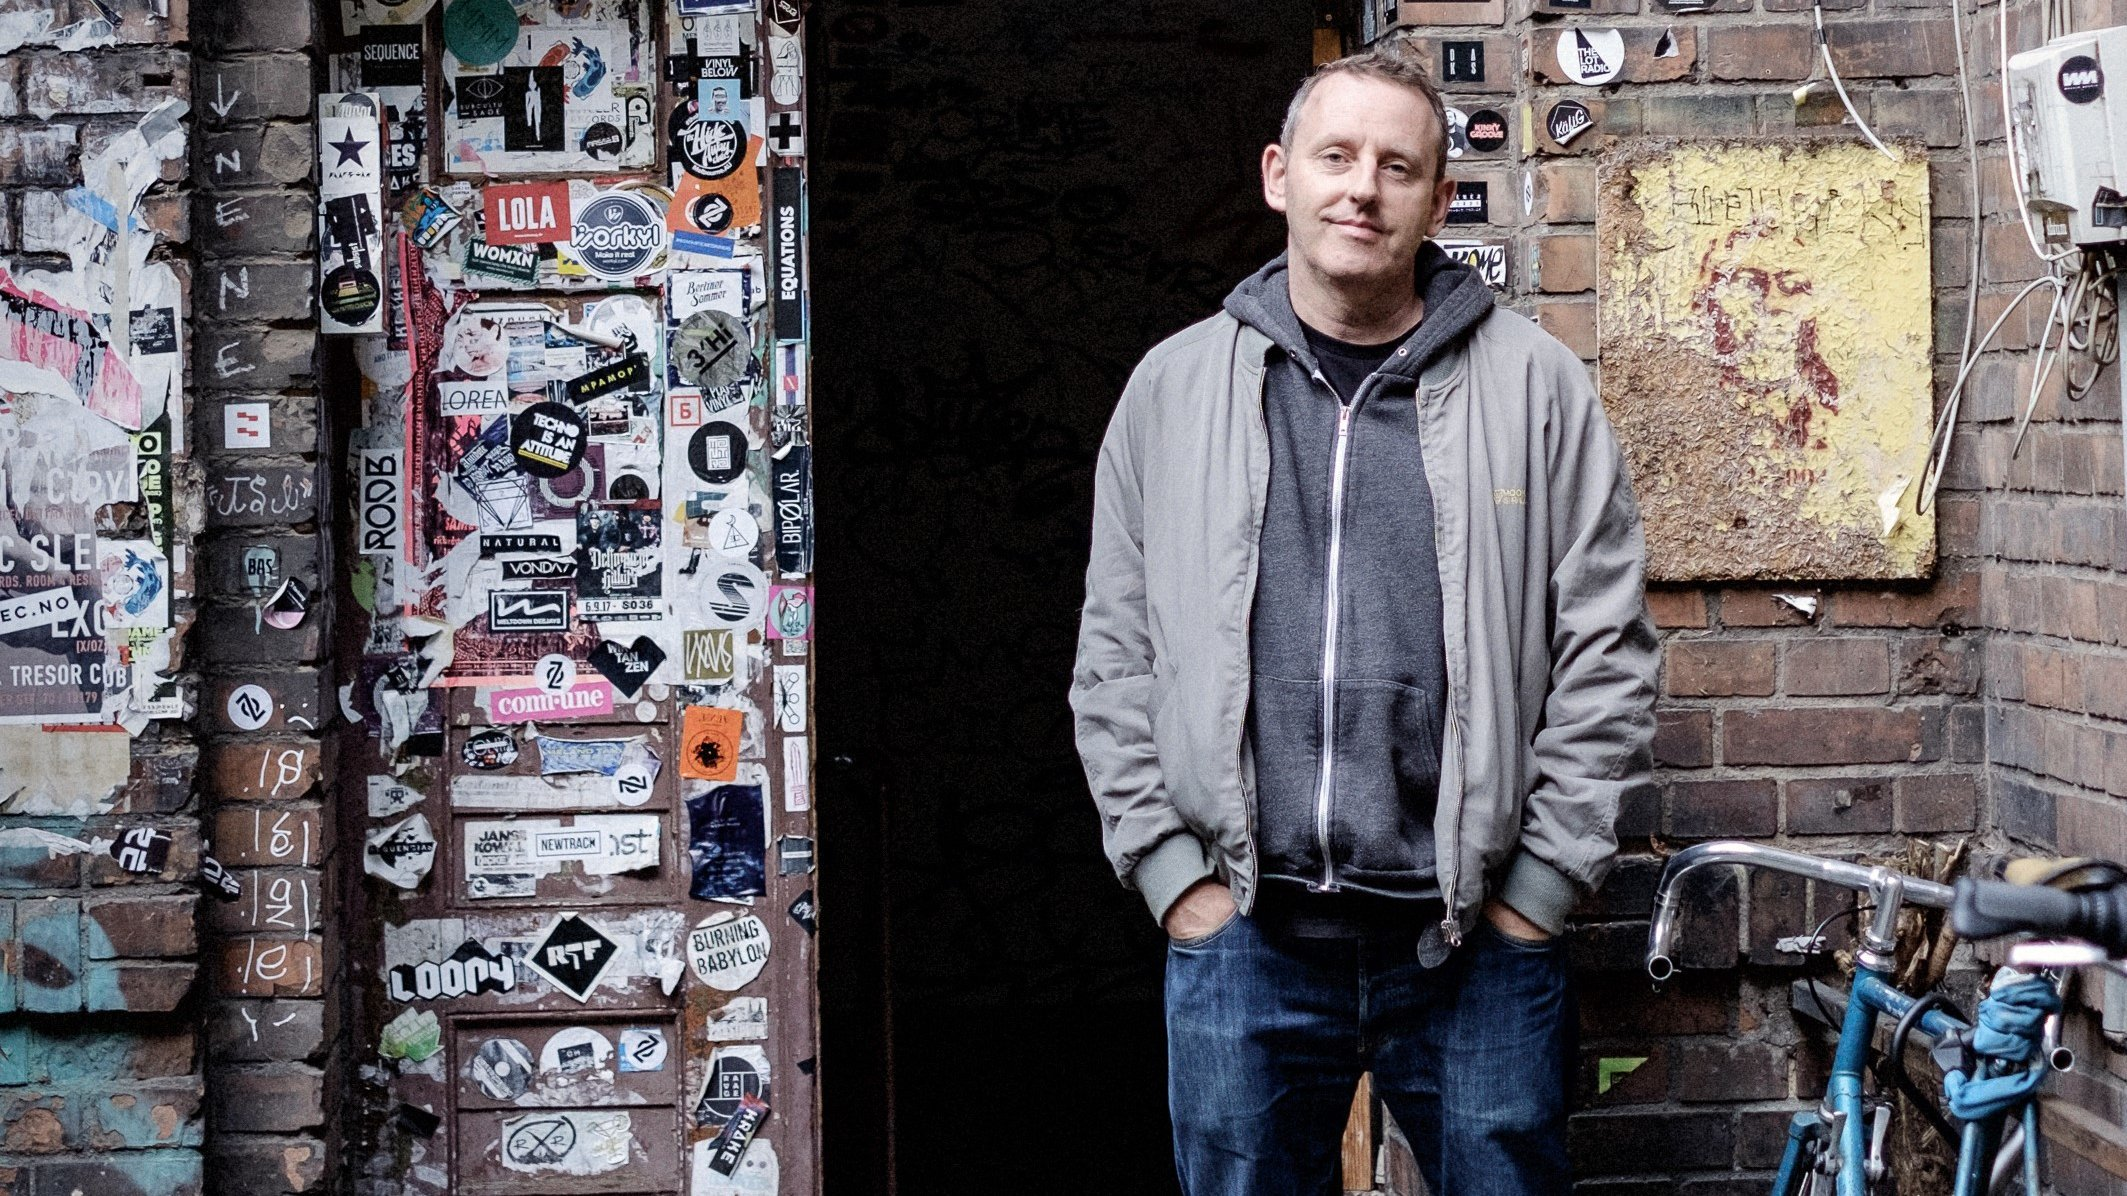 Electronic music veteran Nick Halkes strikes JV with Sentric Music Group and takes on A&R consultancy role – Music Business Worldwide